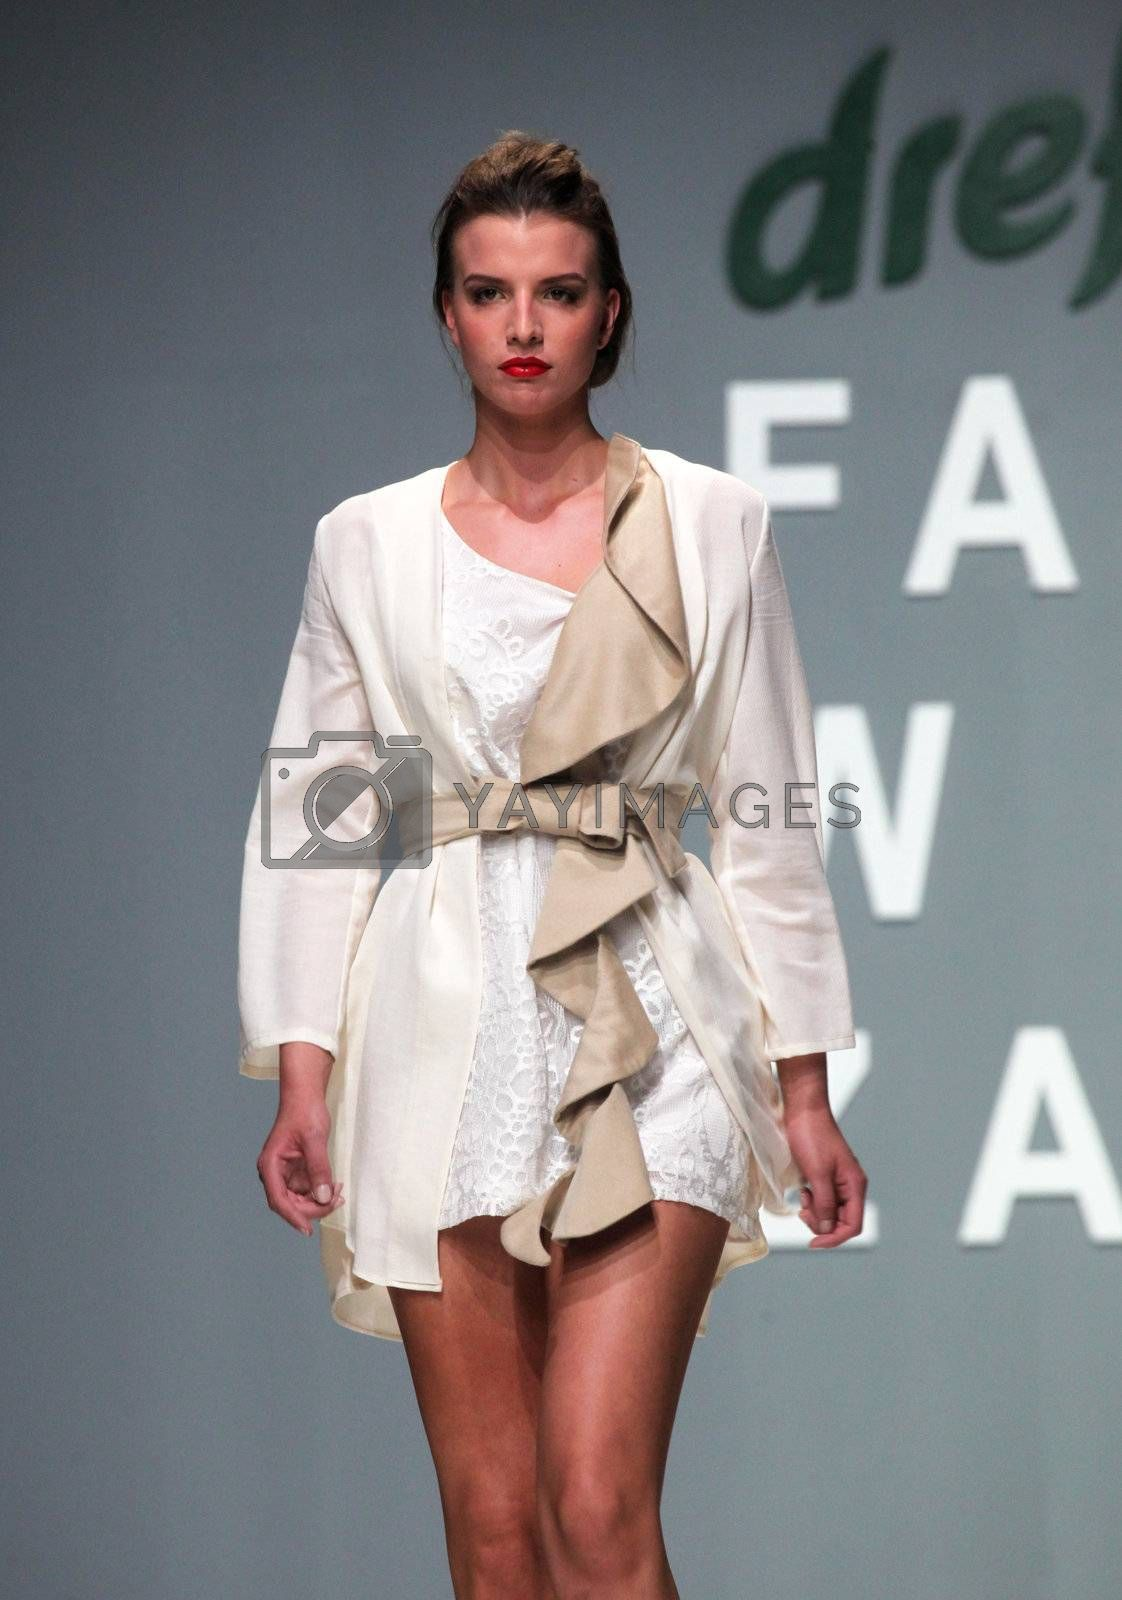 "ZAGREB, CROATIA - May 11: Fashion model wears clothes made by Natalija Smogur on ""ZAGREB FASHION WEEK"" show on May 11, 2012 in Zagreb, Croatia."